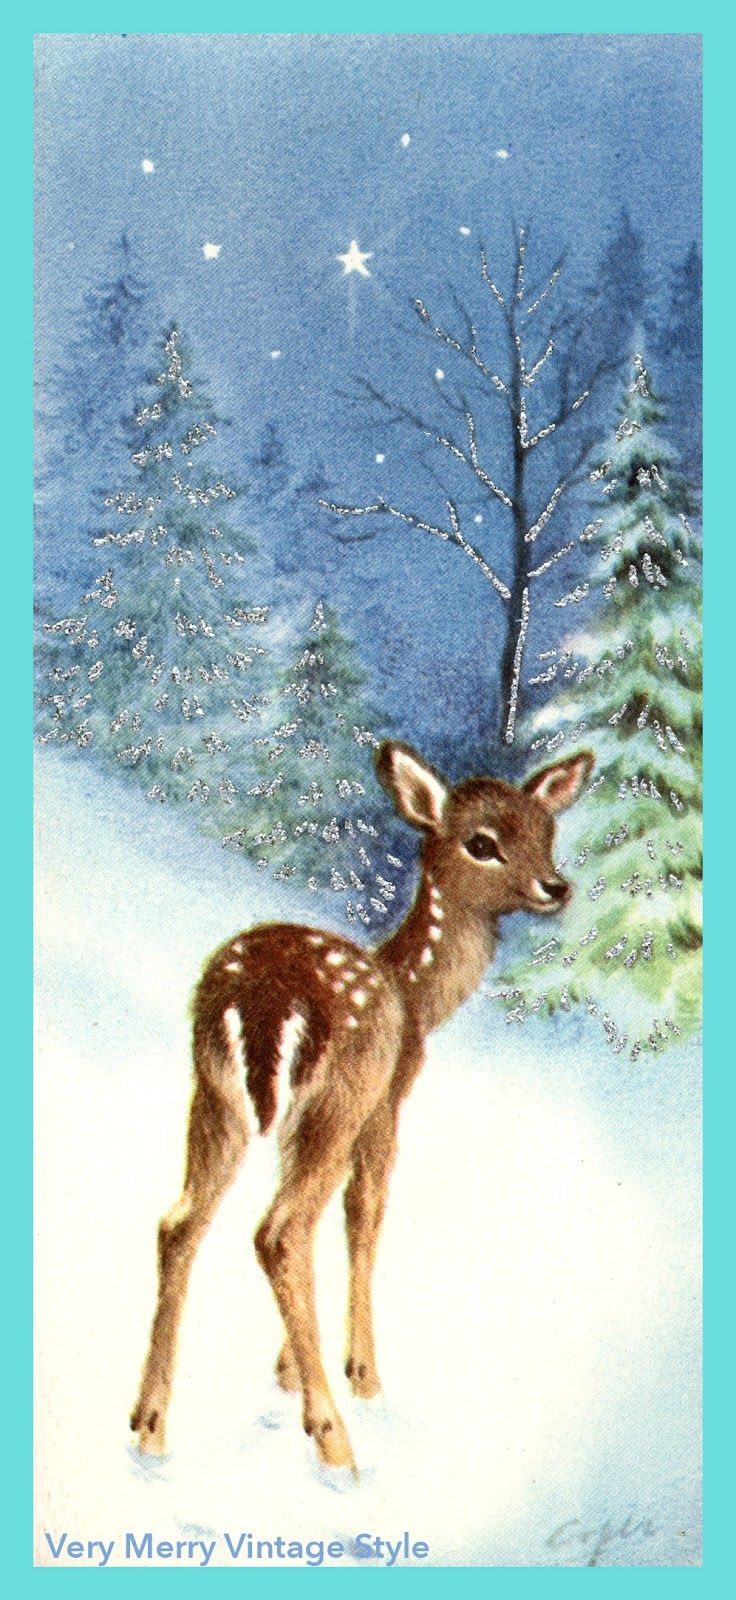 Very Merry Vintage Syle: Vintage Christmas Cards